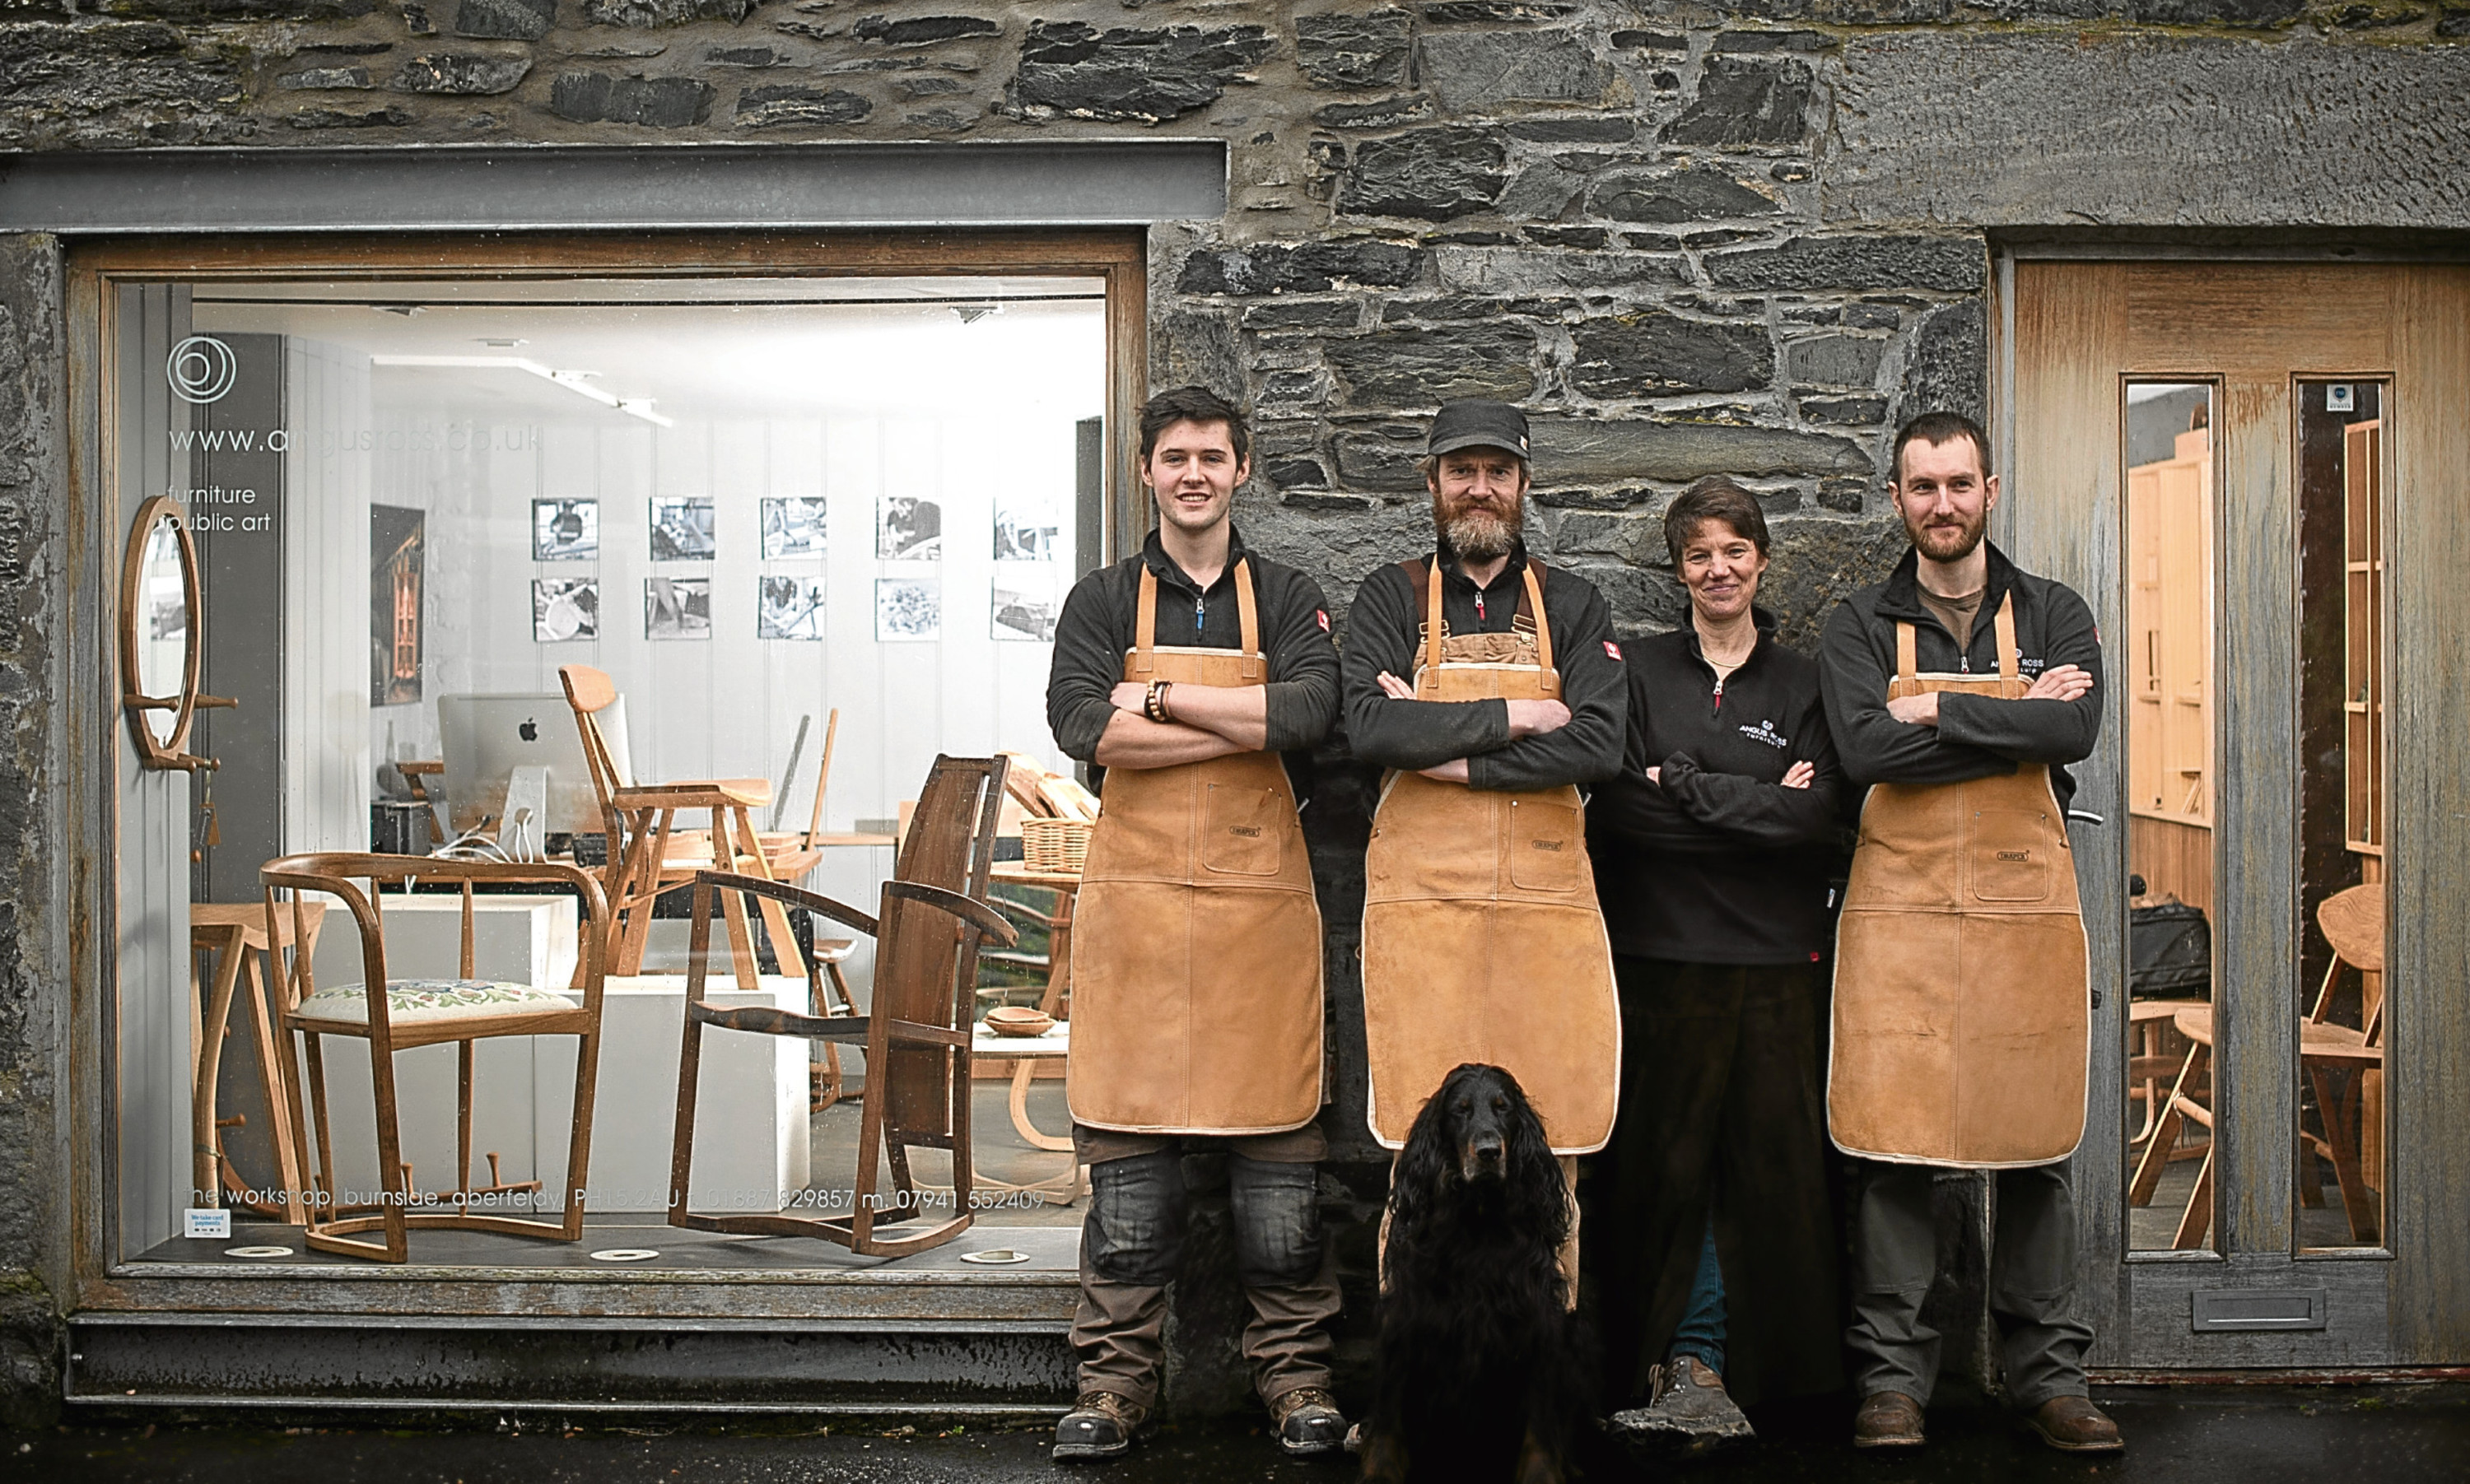 Angus Ross, second from left) and members of his team